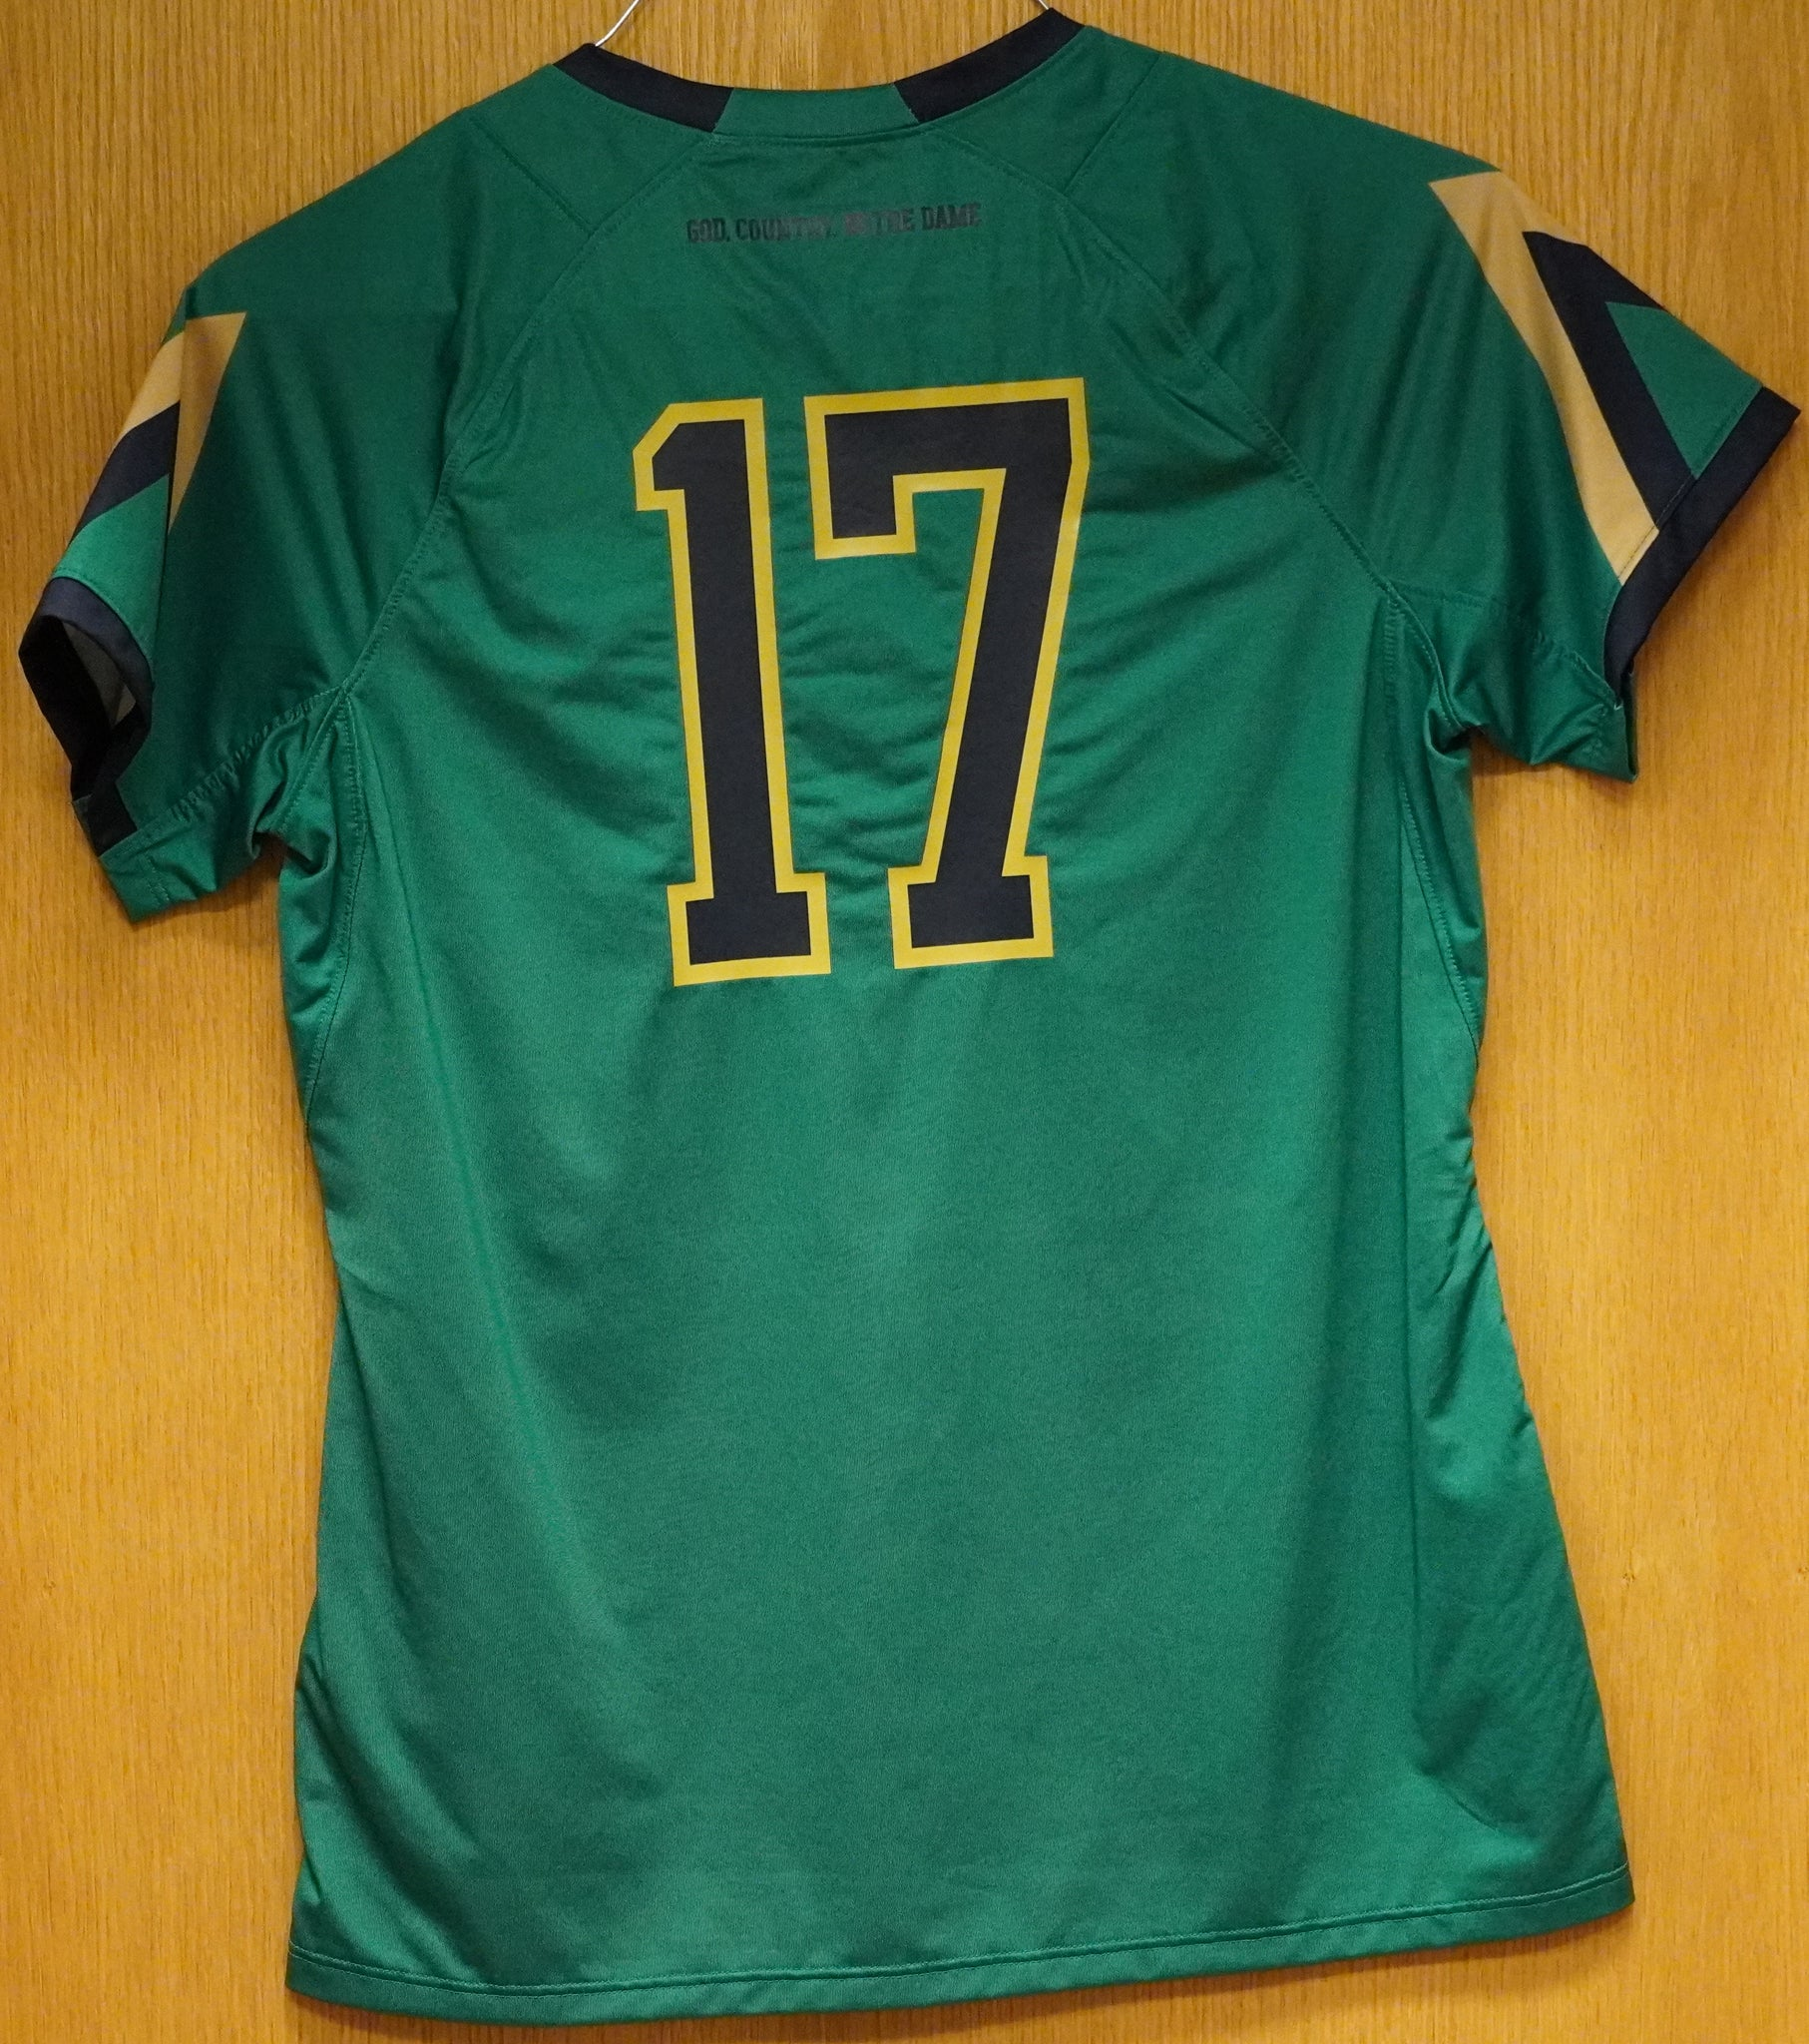 GAME WORN WOMEN'S SOCCER JERSEY #17 (Medium)